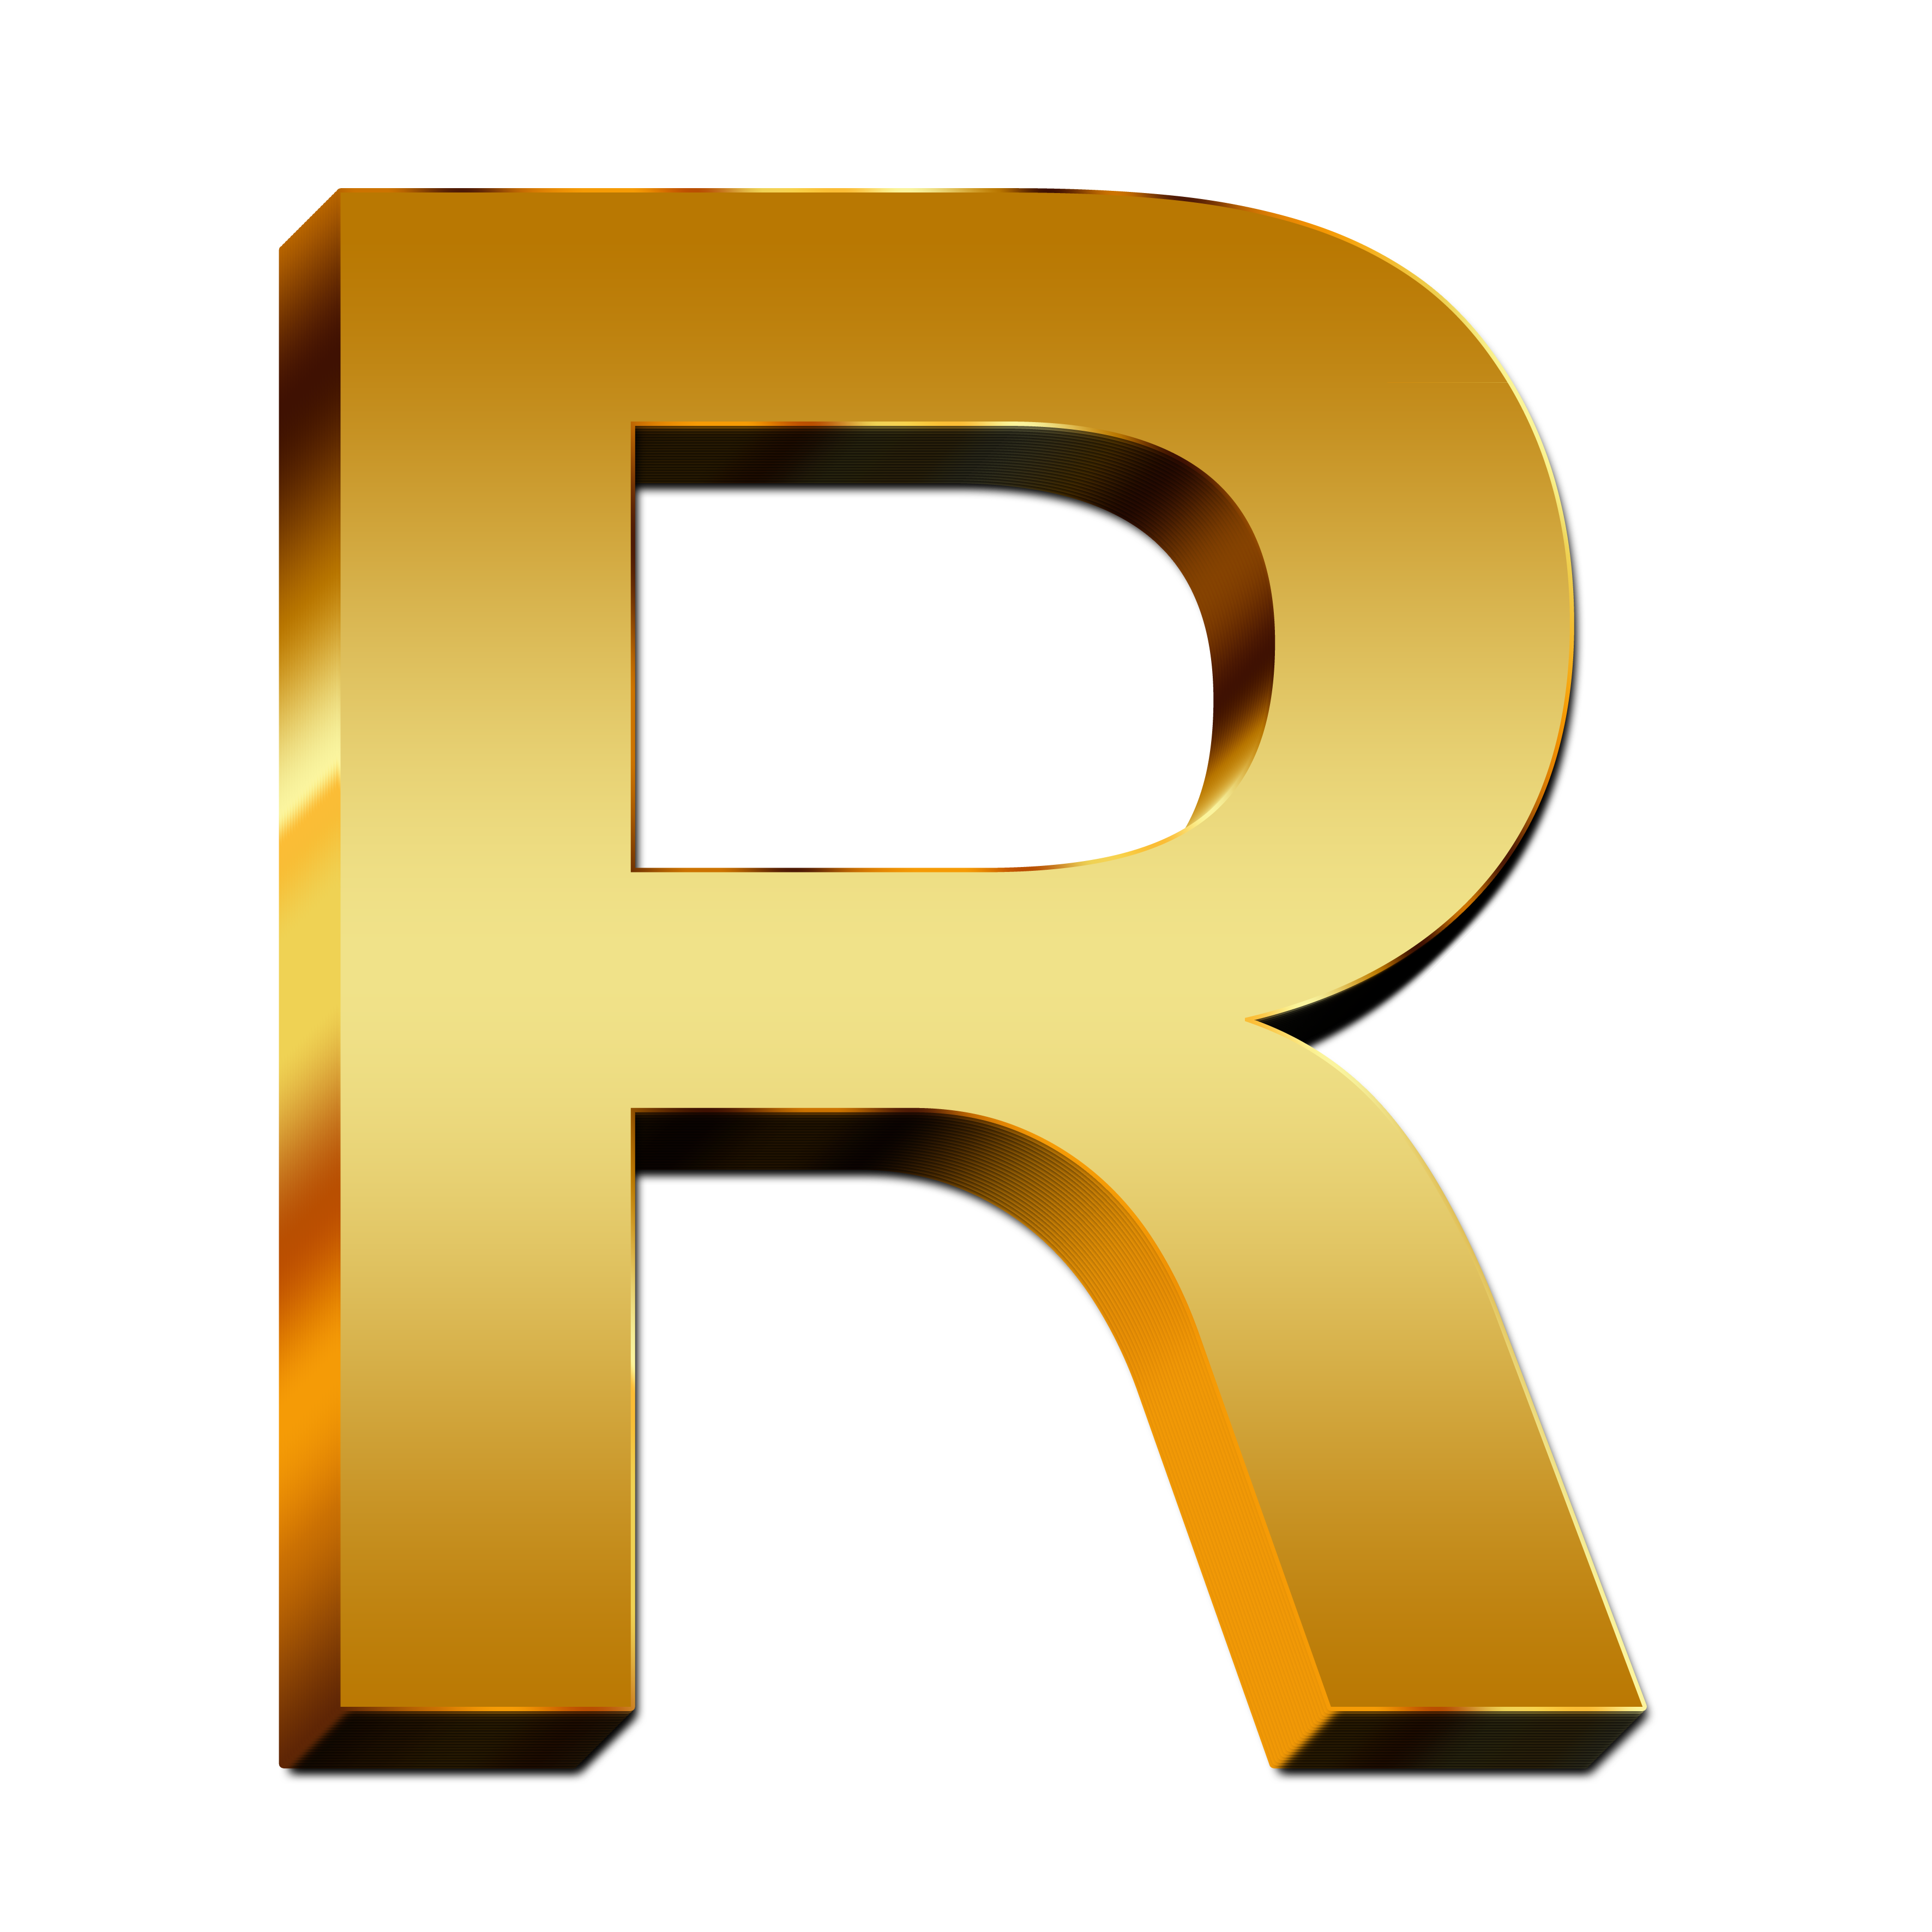 Capital letter a png. R free image